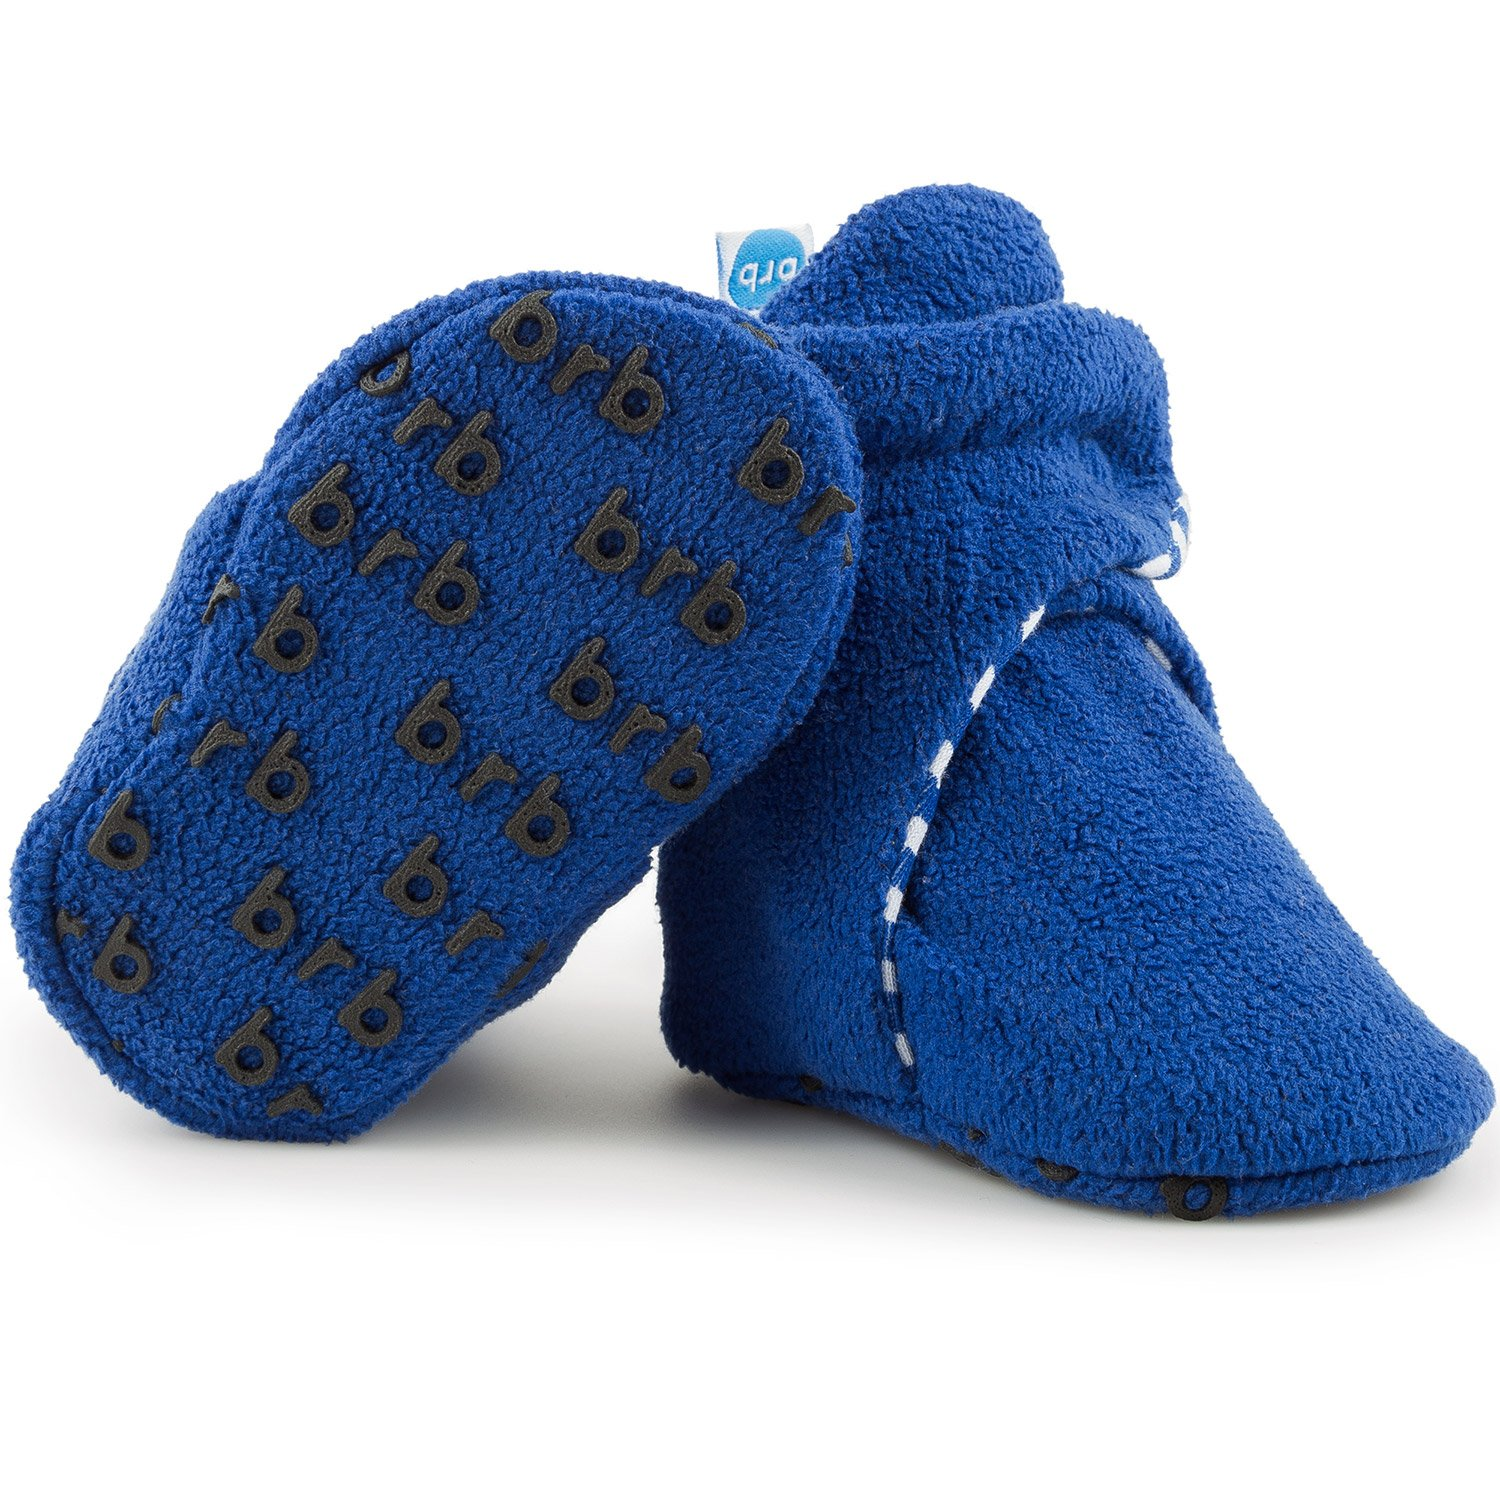 700ee499e Fleece Baby Booties - Organic Cotton & Gripper Bottoms, Cozy Boys & Girls  Bootie